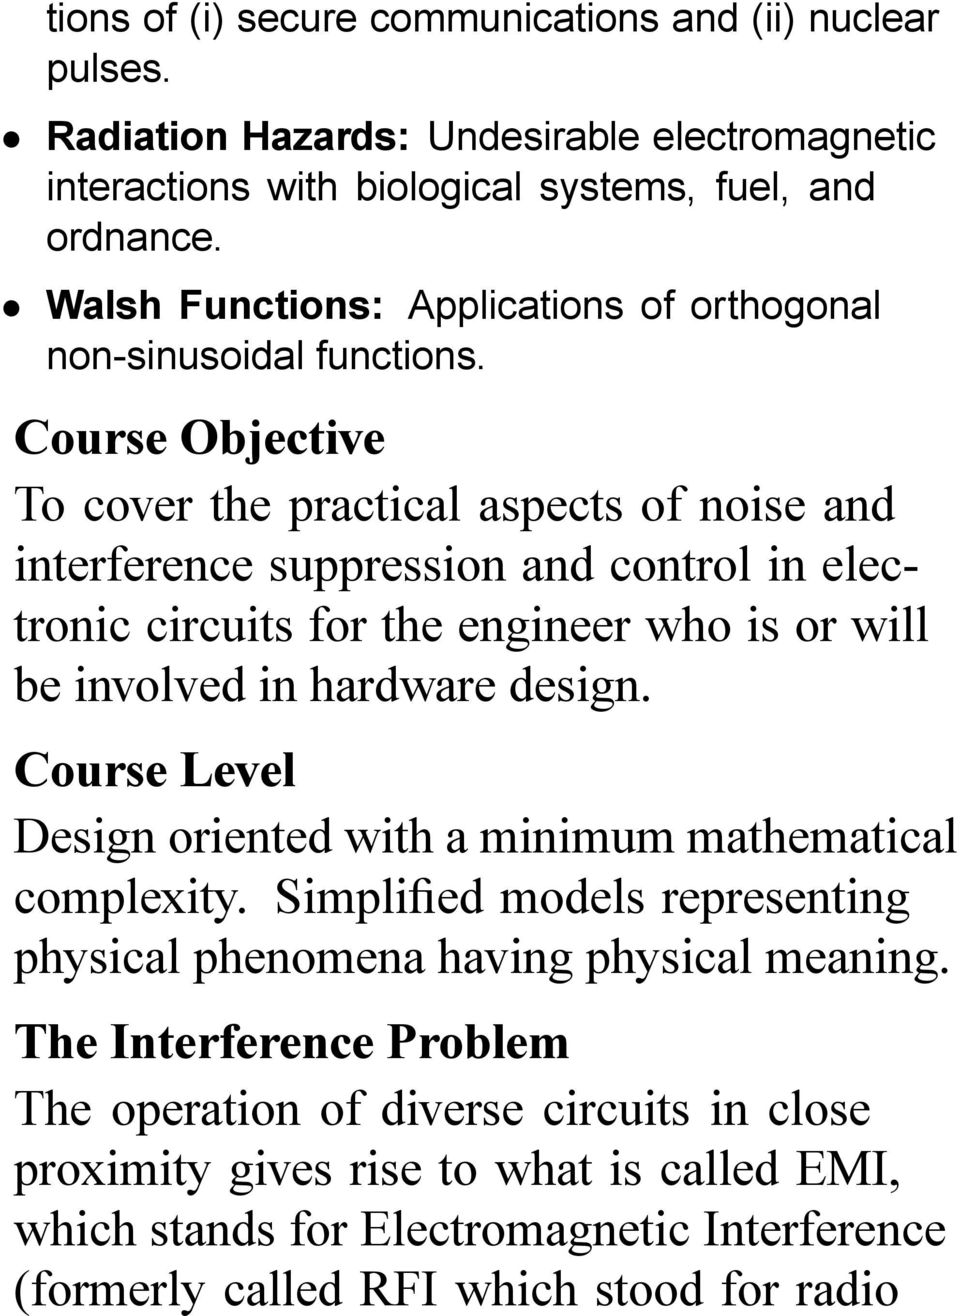 Course Objective To cover the practical aspects of noise and interference suppression and control in electronic circuits for the engineer who is or will be involved in hardware design.